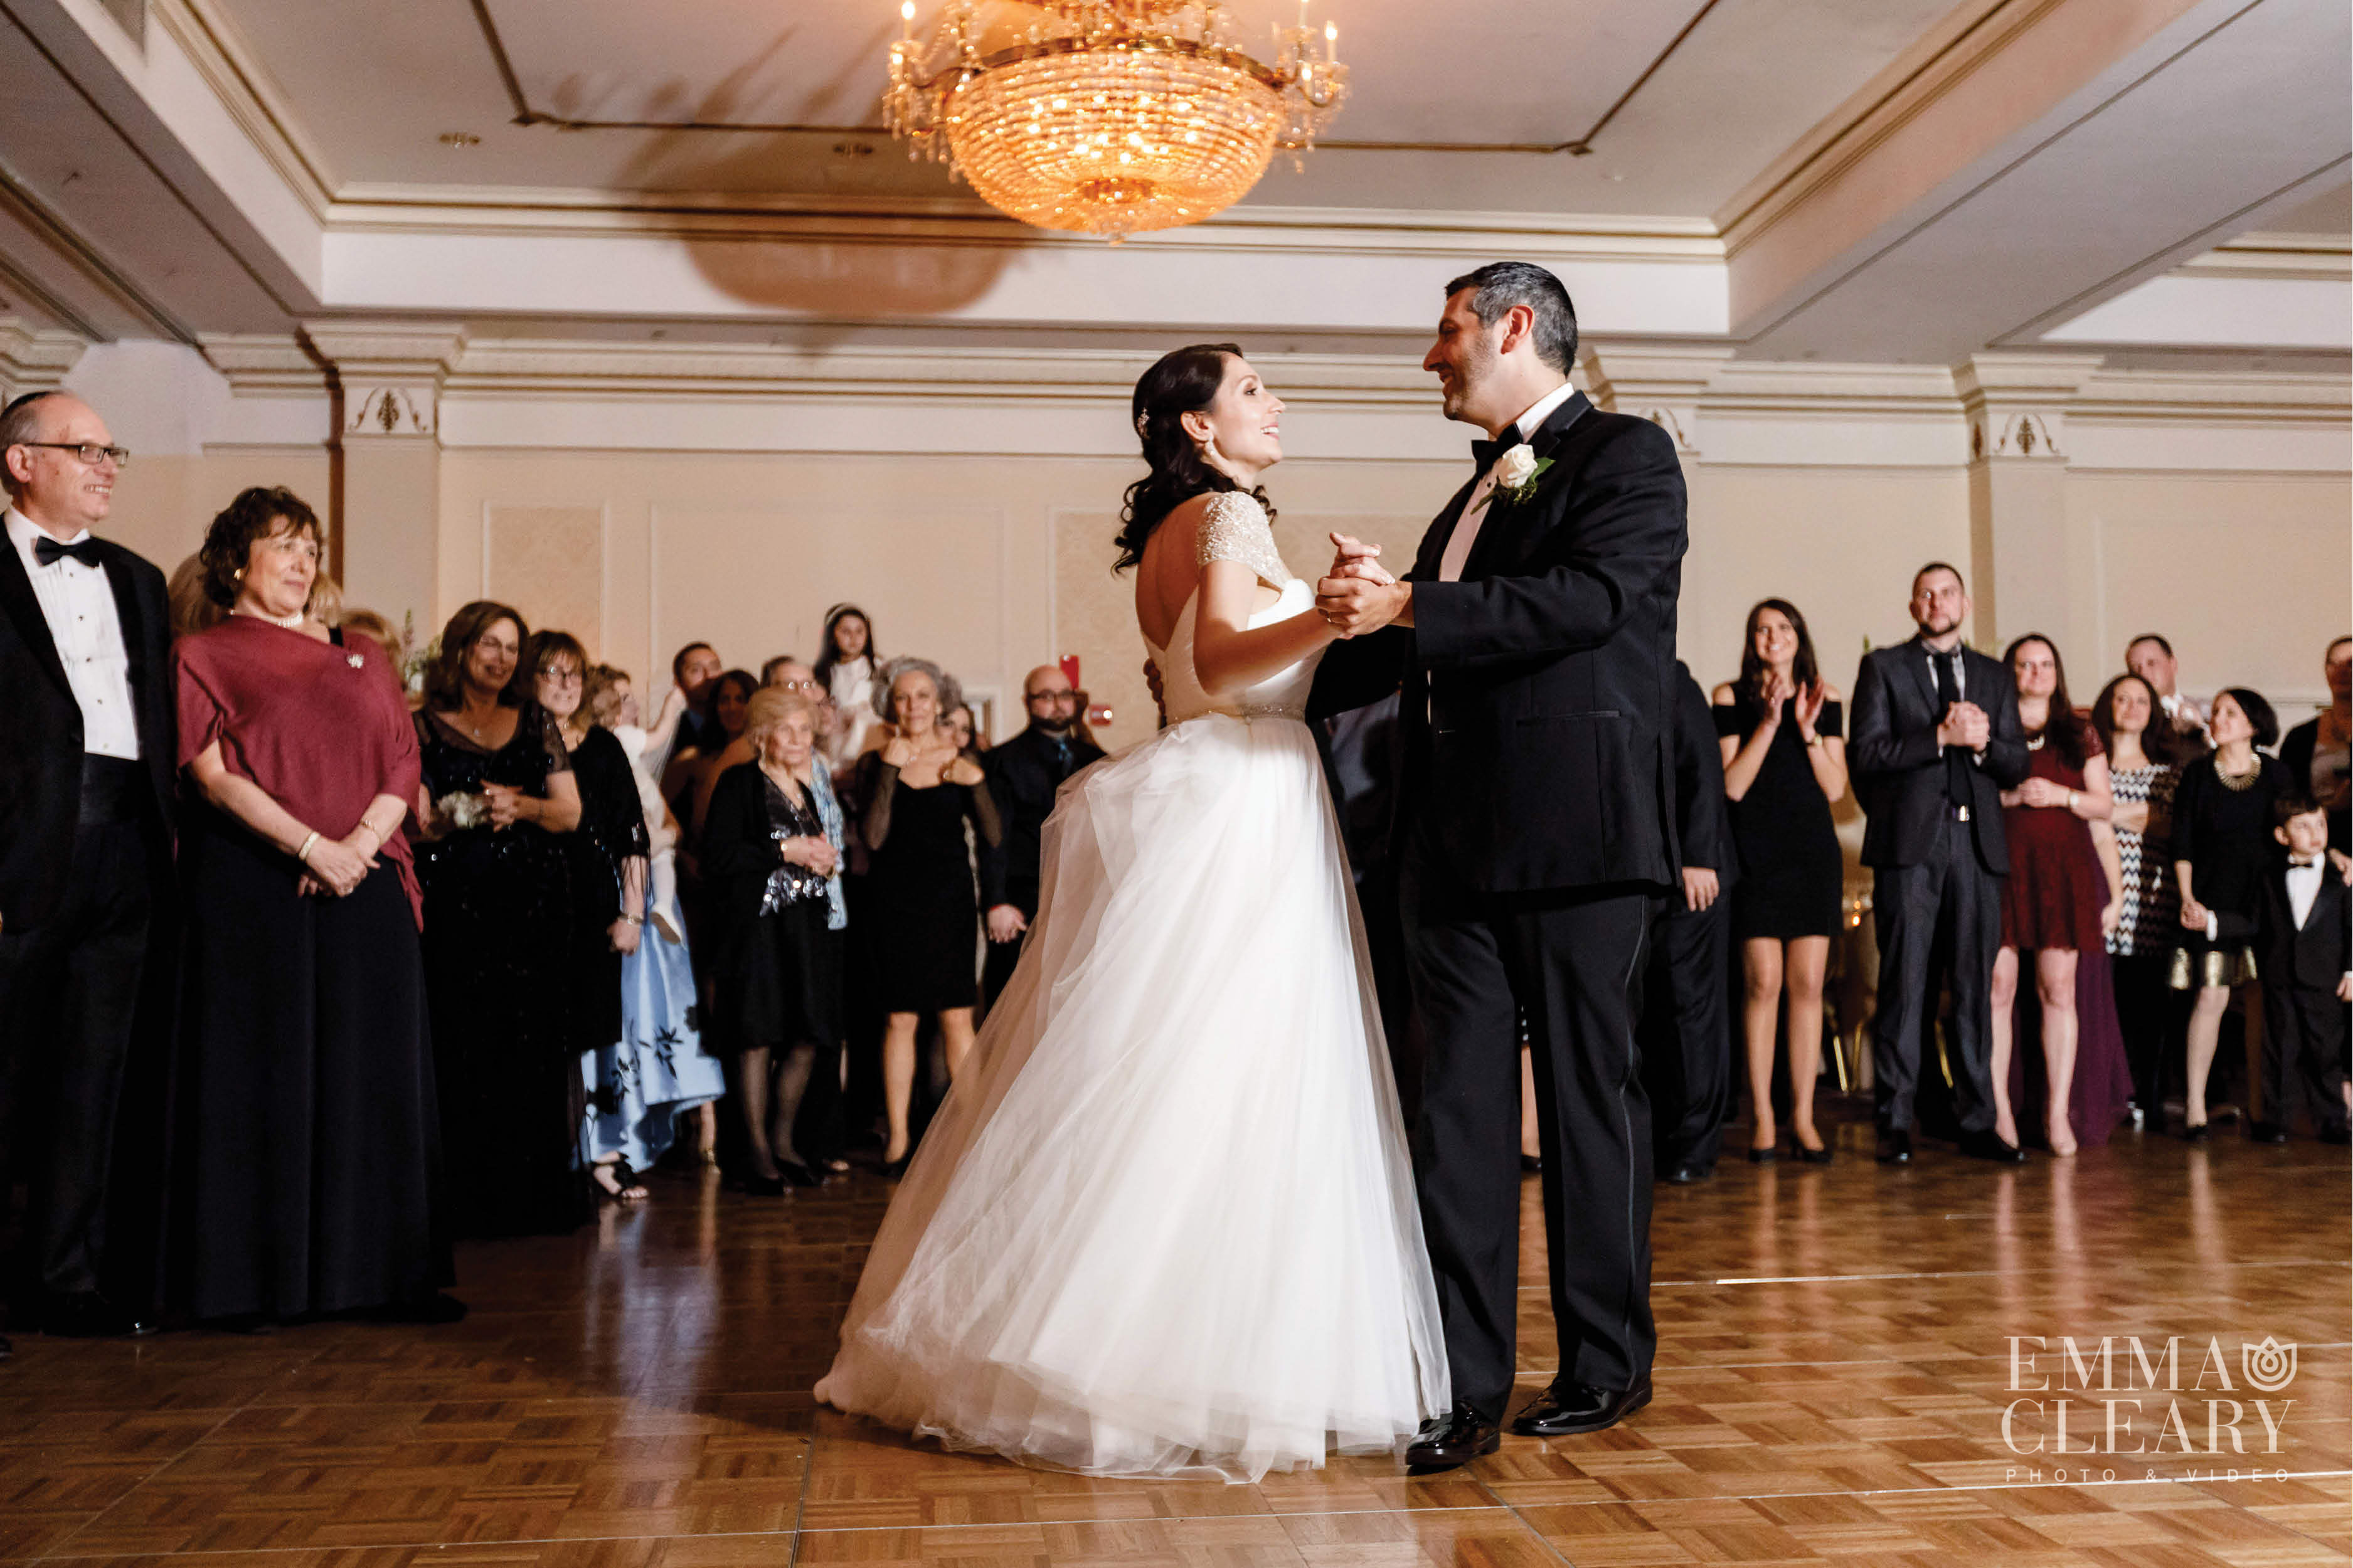 Emma_cleary_photography Hilton pearl river NY wedding32